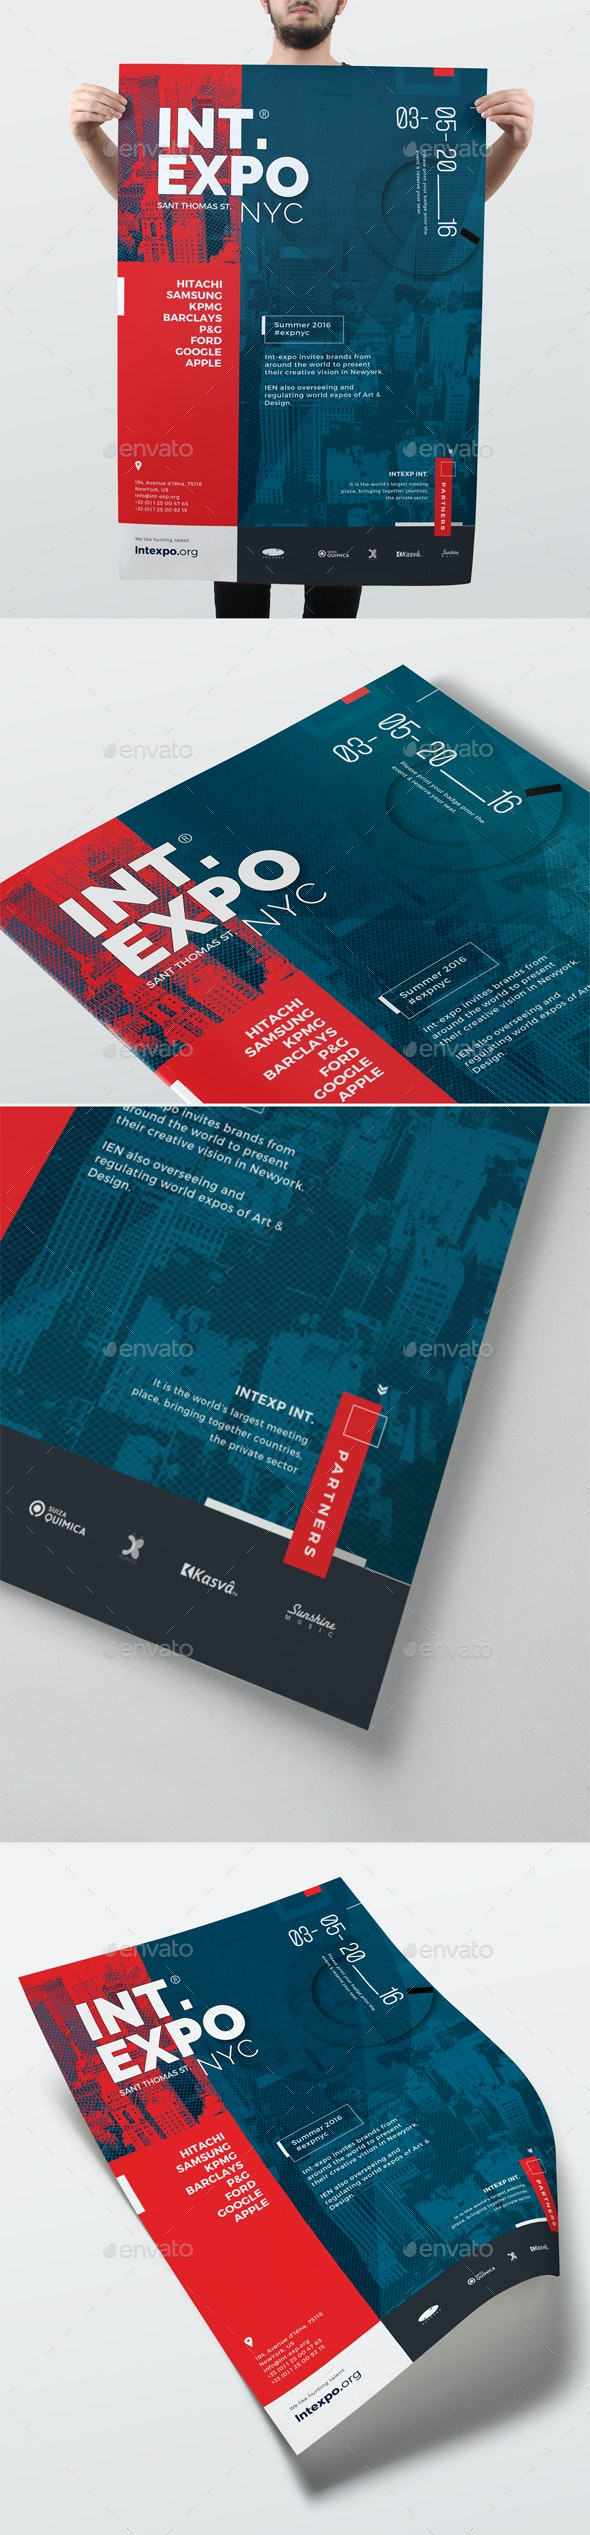 Corporate Promotional Event Poster - Corporate Flyers